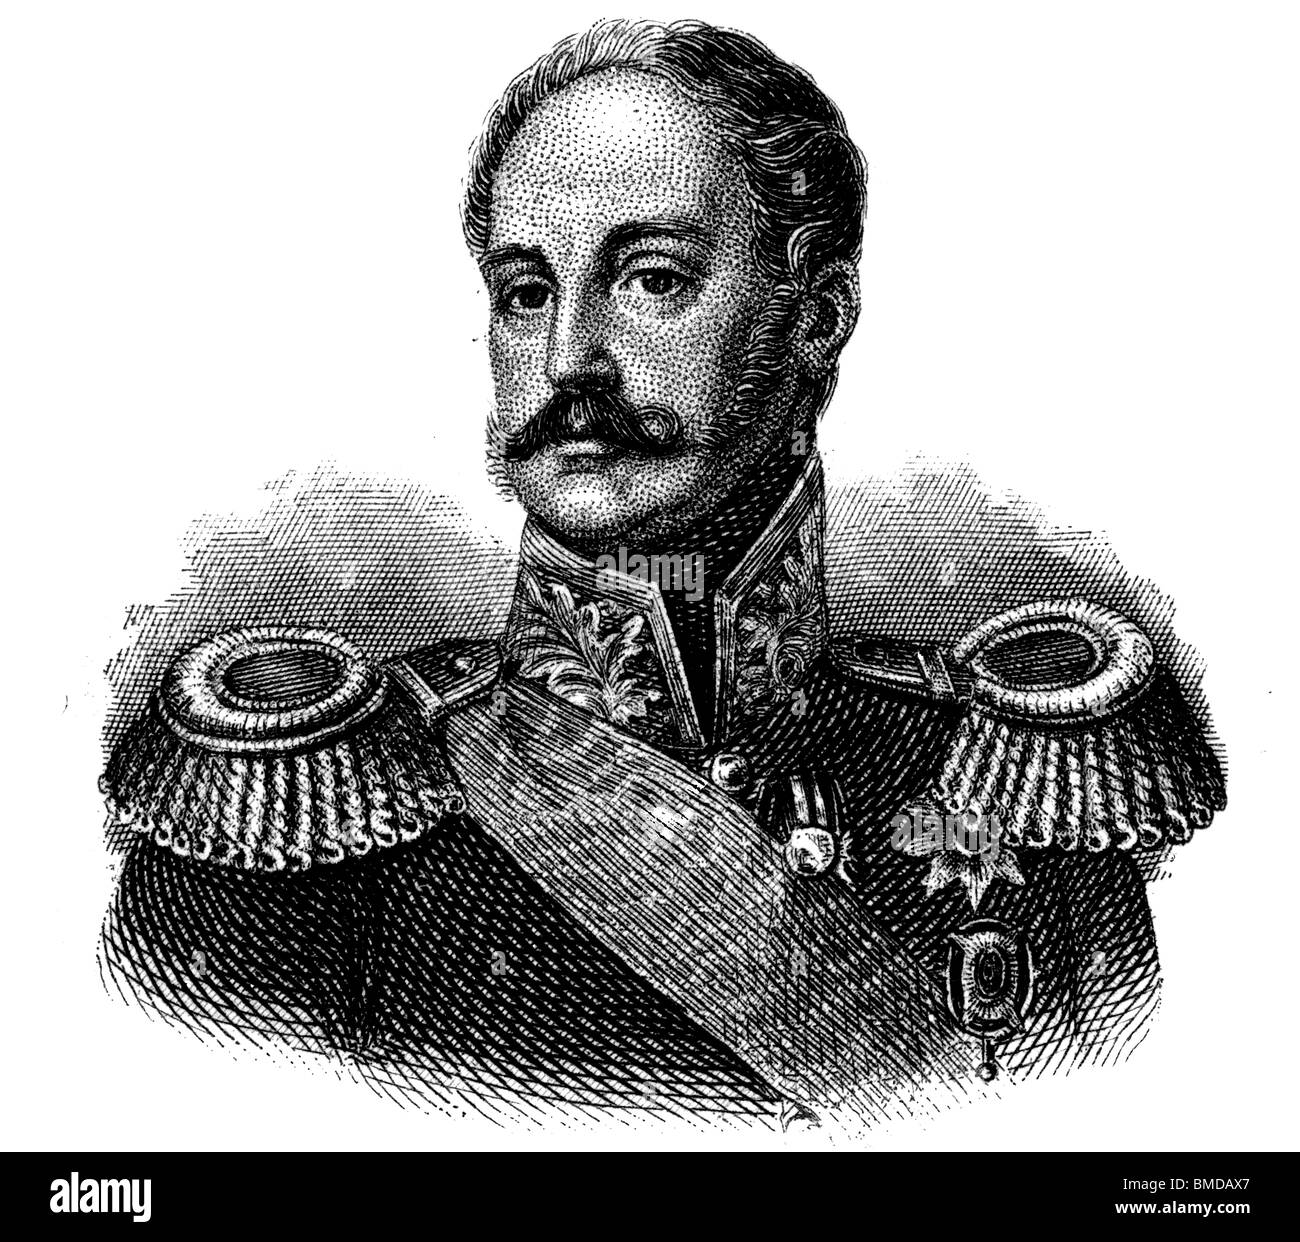 Nicholas I of Russia - Stock Image